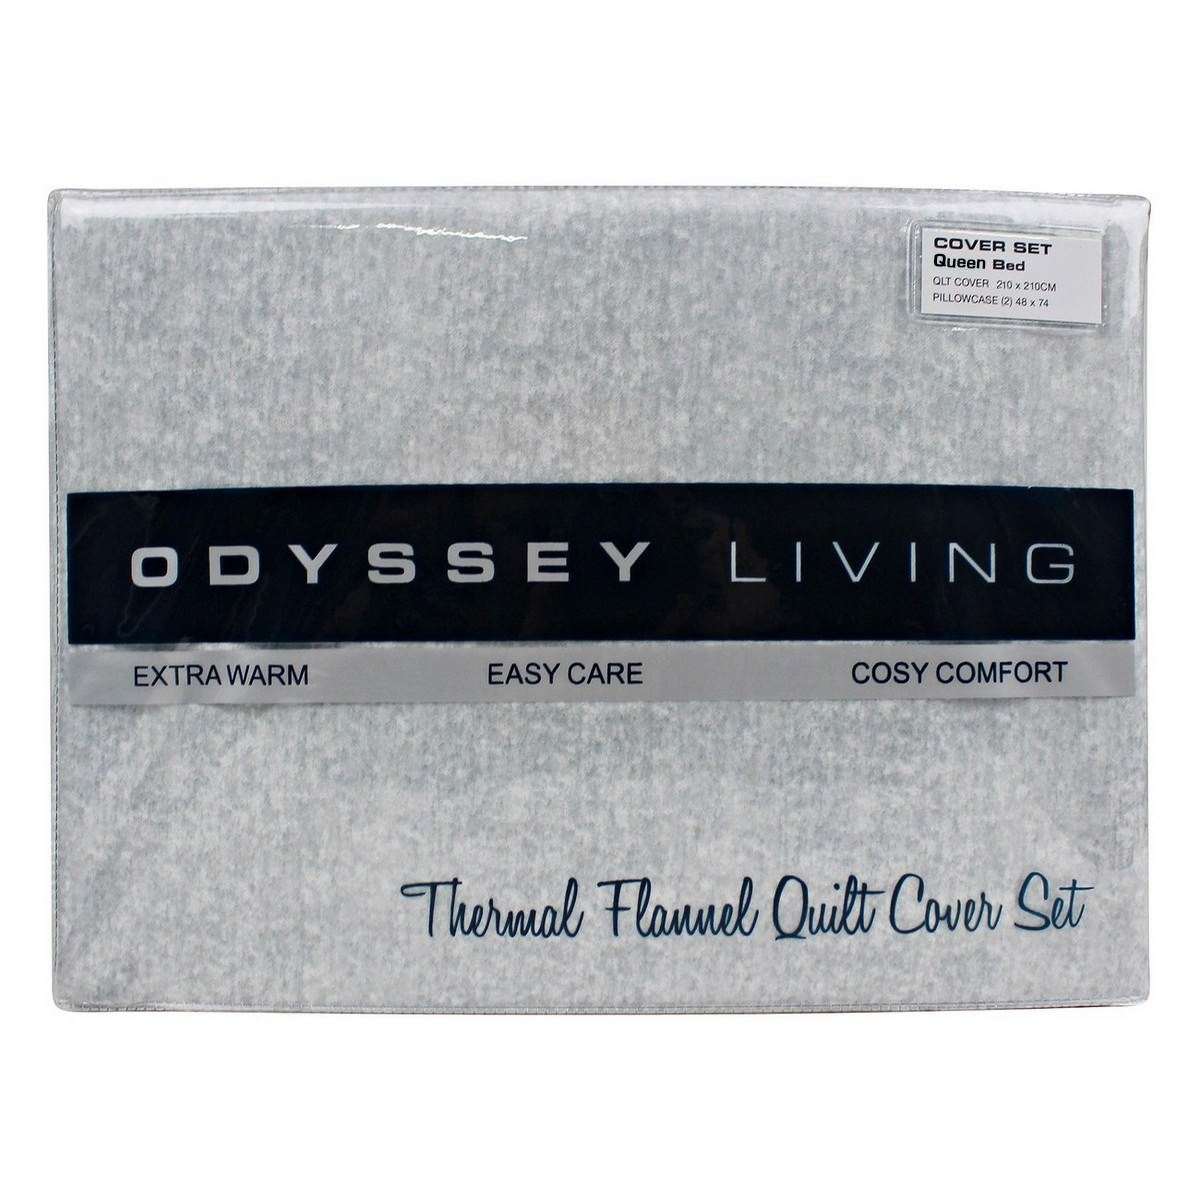 Odyssey Living Marle Thermal Flannel Quilt Cover Set, Queen, Pale Grey